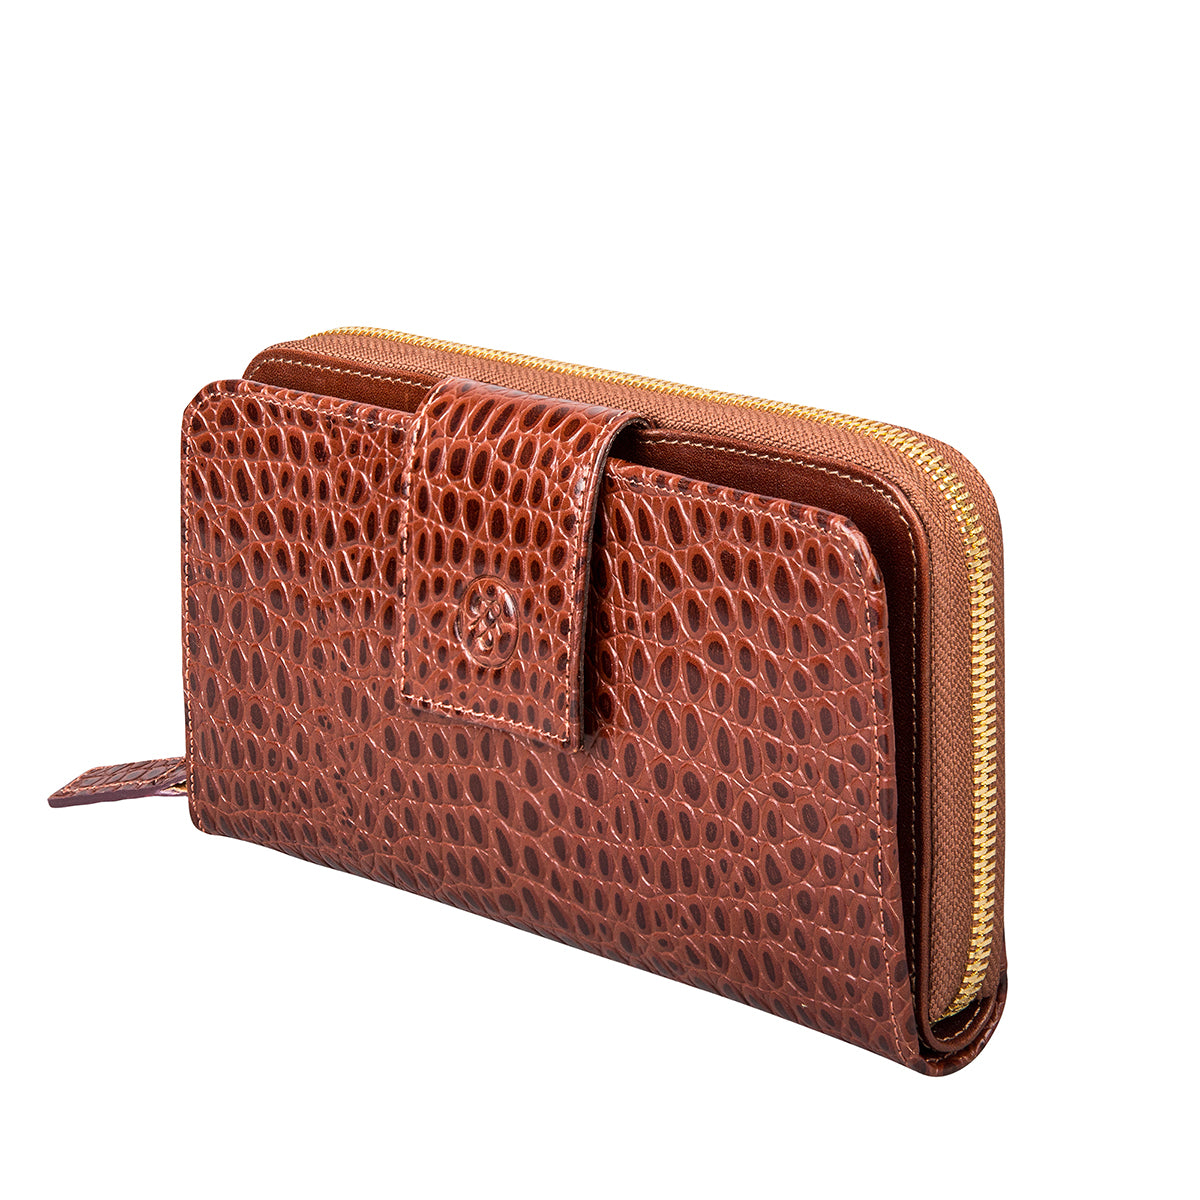 Image 2 of the 'Giorgia' Chestnut Mock Croc Veg-Tanned Leather Zip Purse